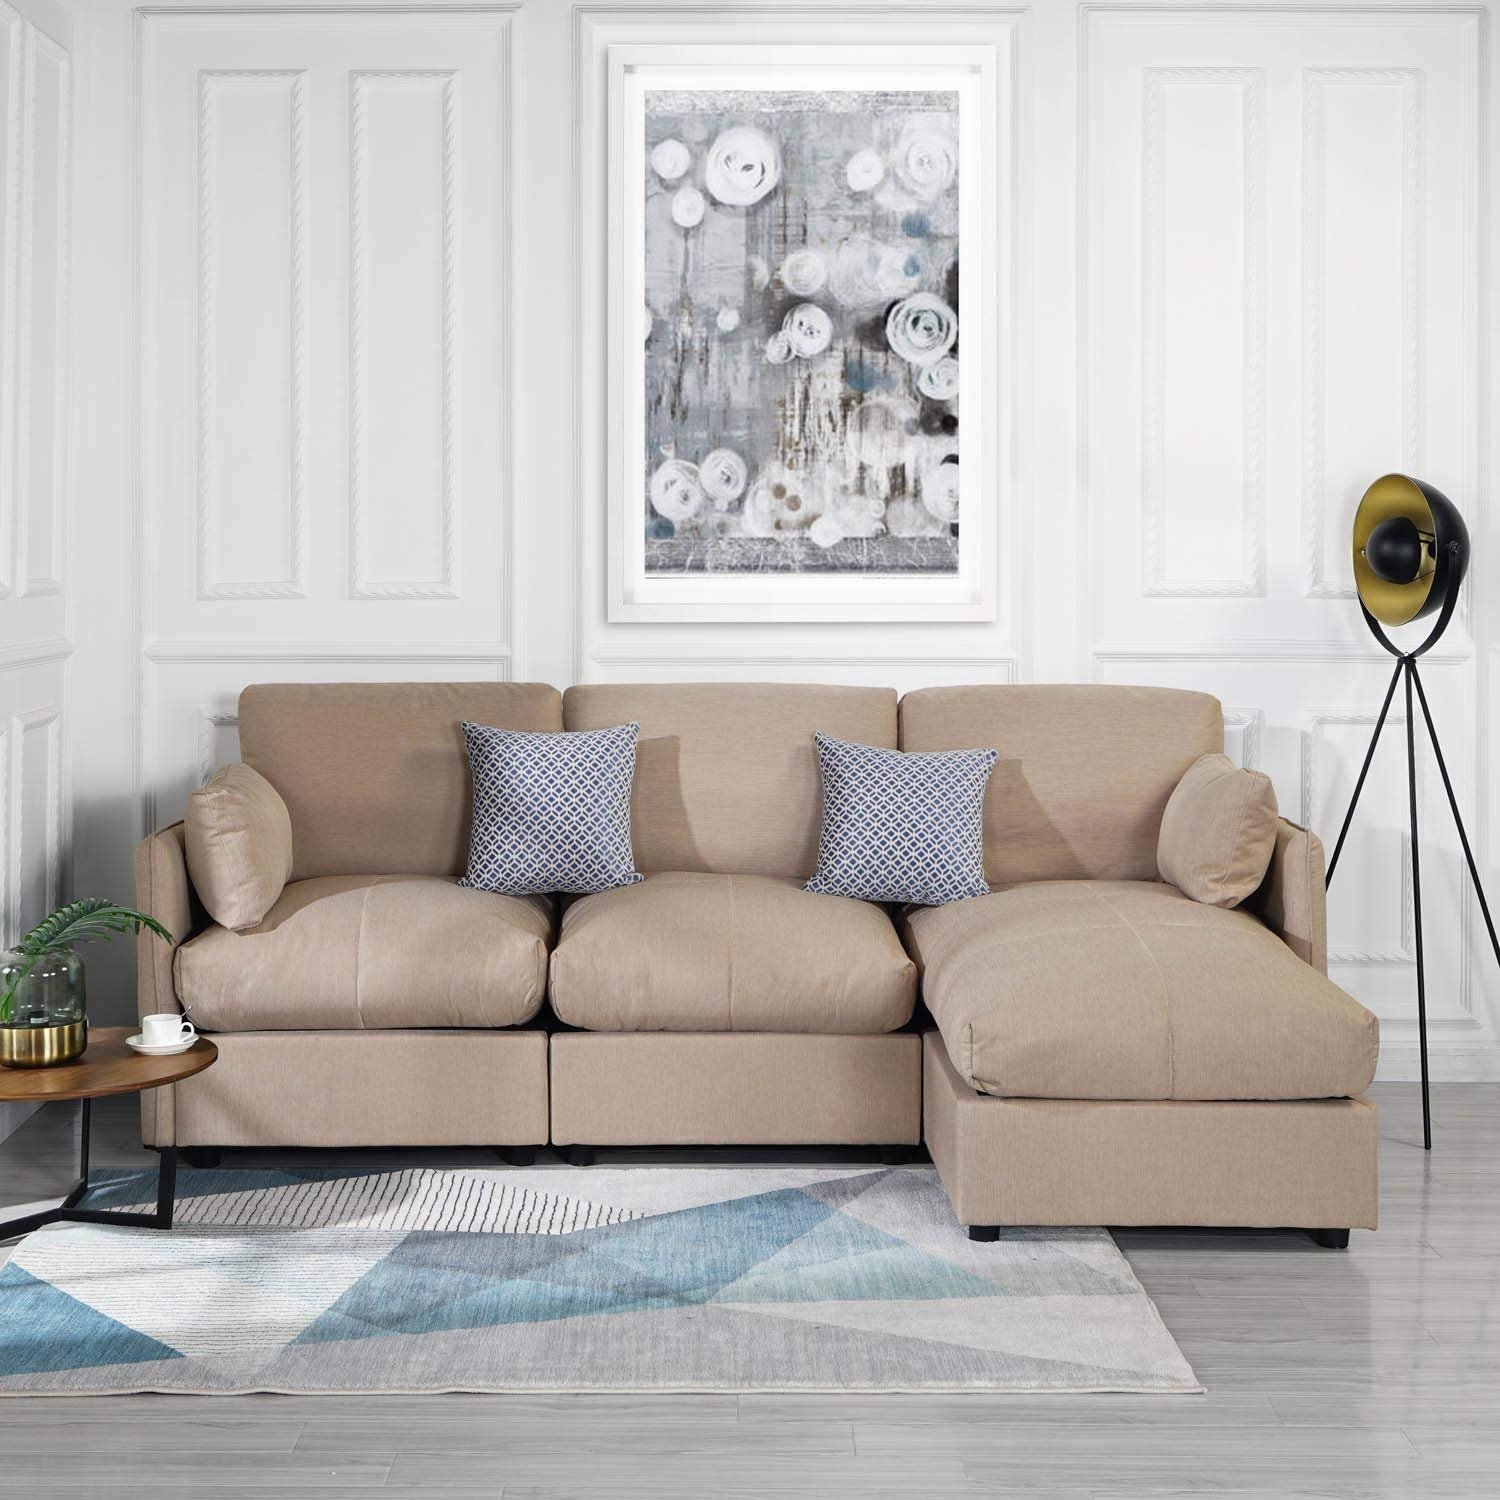 Miraculous Details About Beige 97 Inch Linen Sectional Sofa L Shape Couch Right Facing Chaise Lounge Short Links Chair Design For Home Short Linksinfo